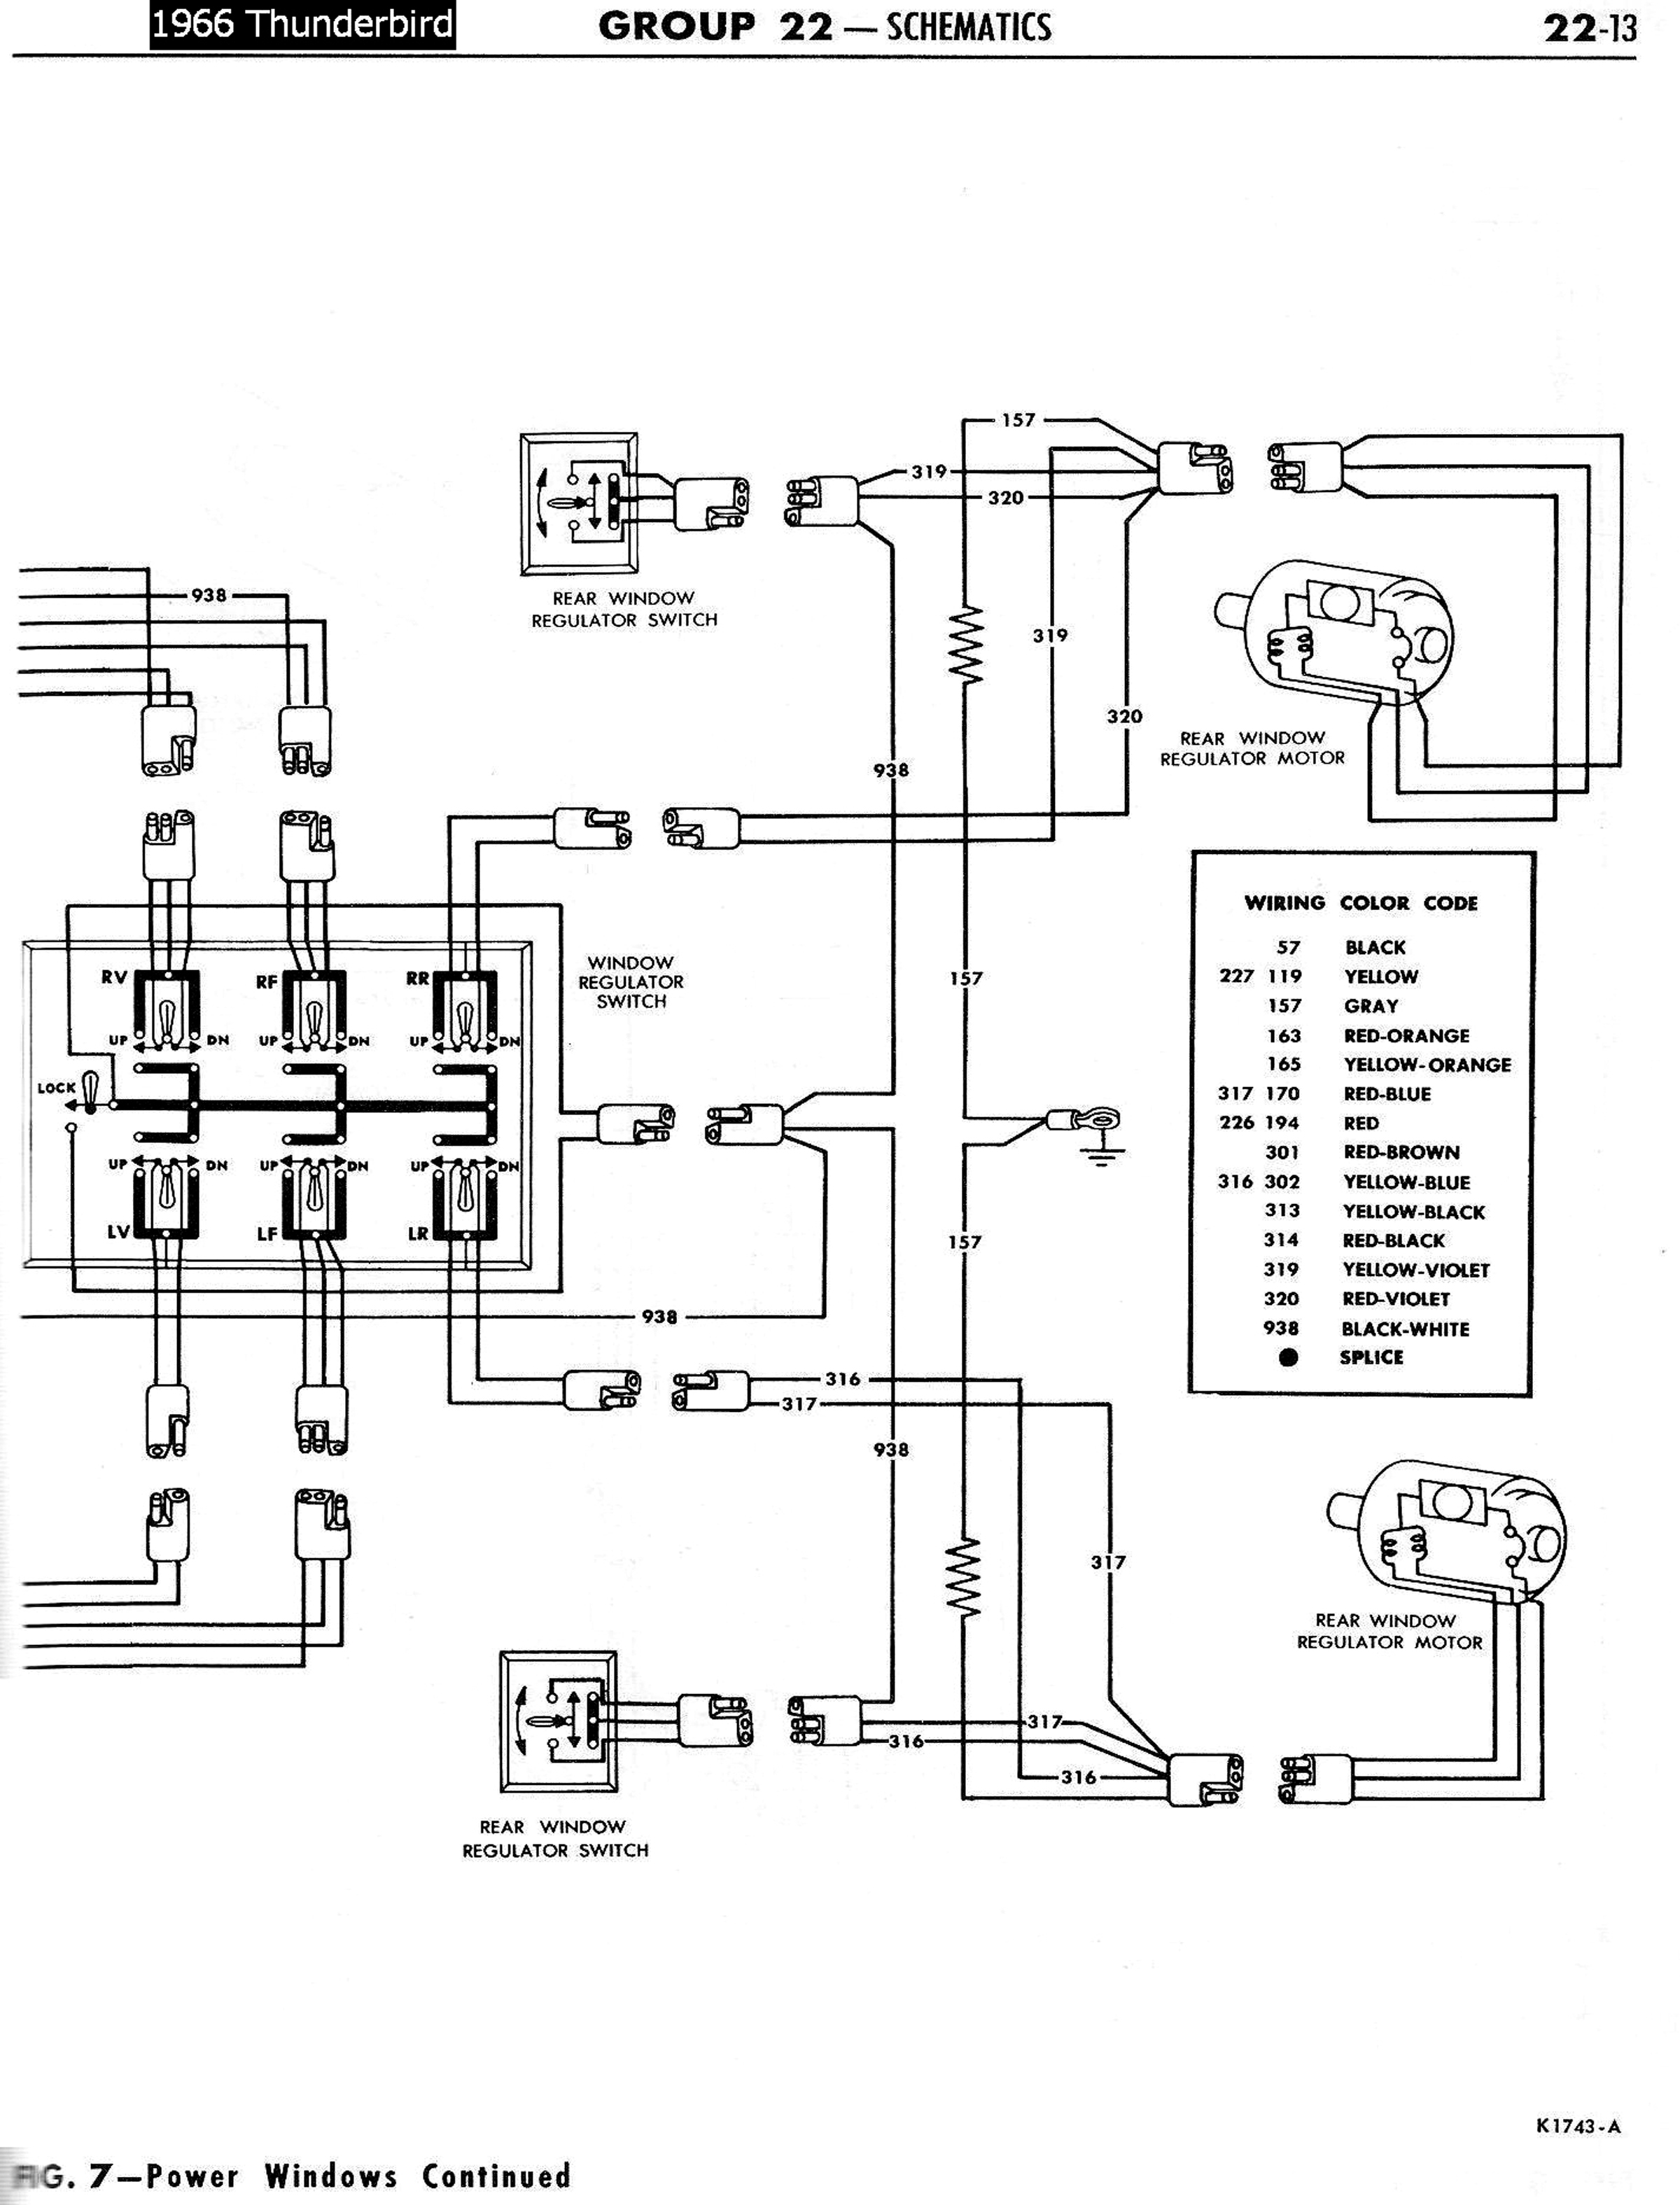 1968 Thunderbird Wiring Diagram Diagrams Reader 68 Mustang Harness Site 1960